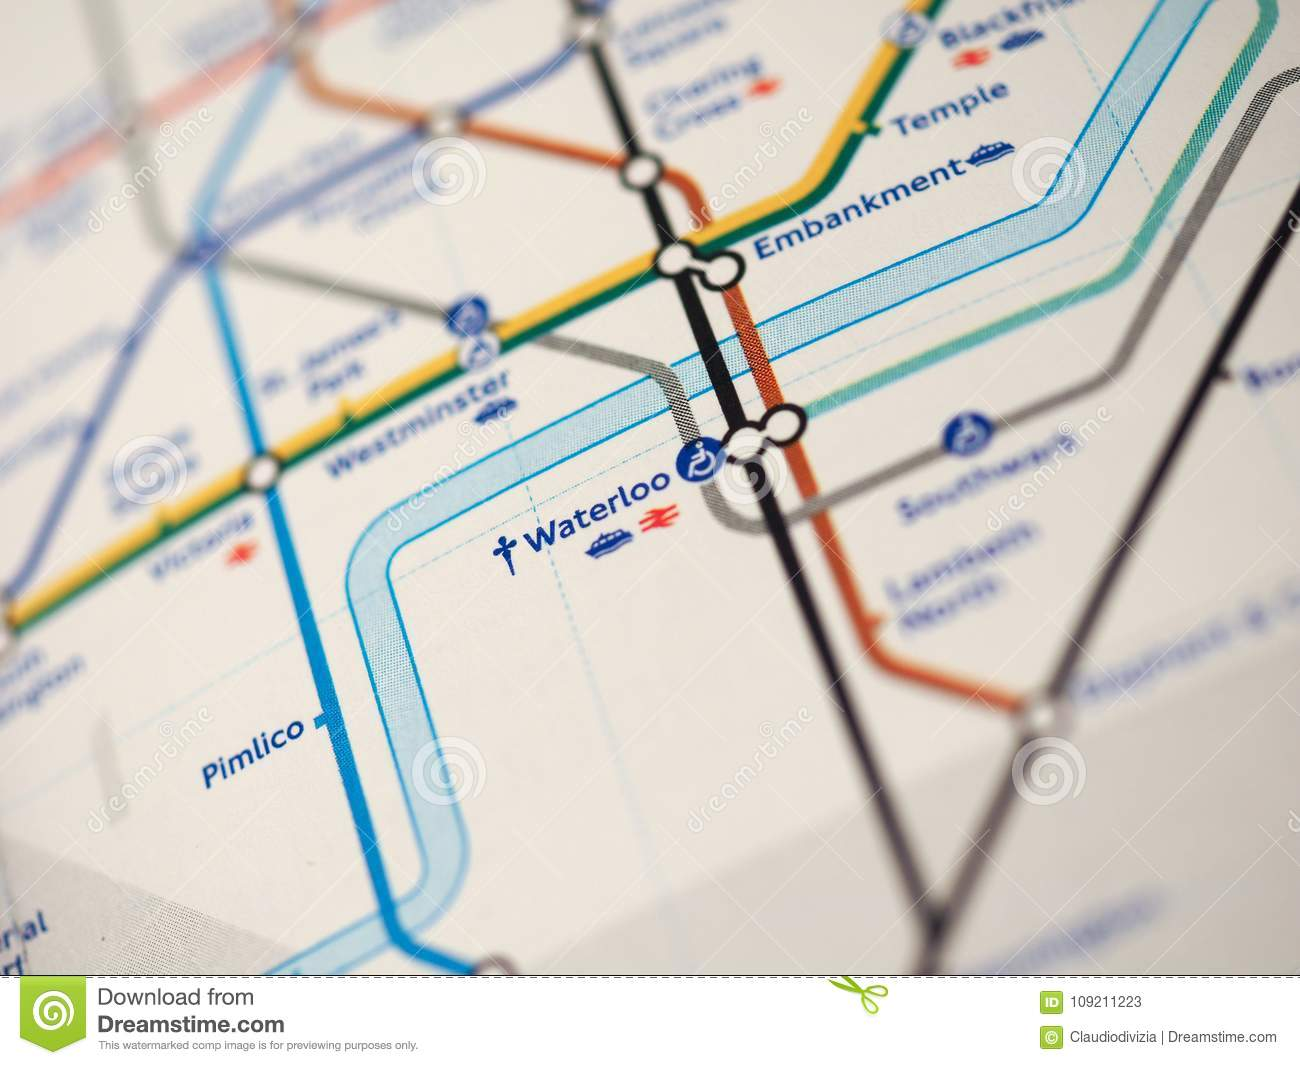 London Stations Map.Map Of London Underground Stock Image Image Of Great 109211223